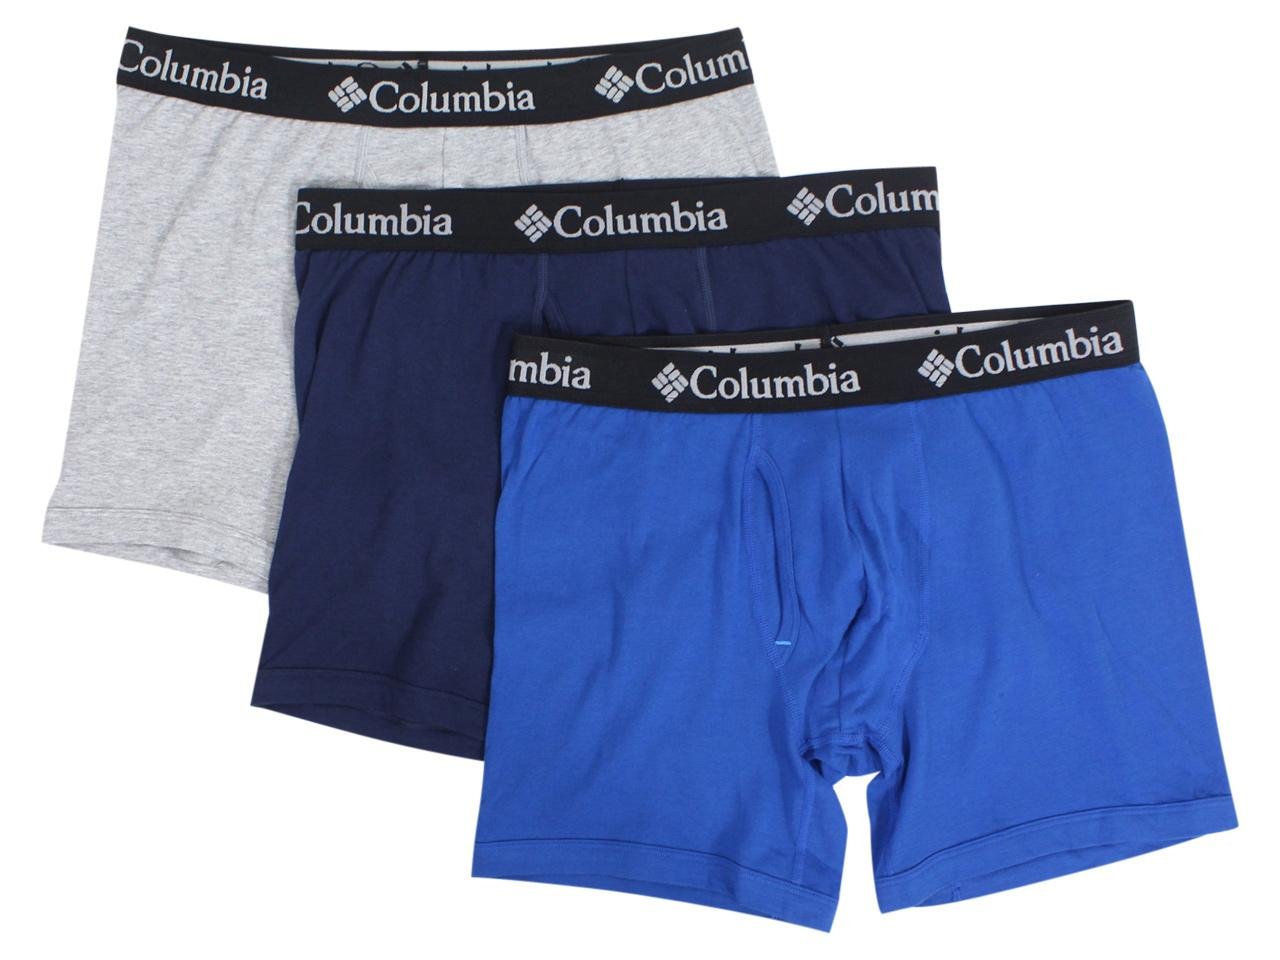 Columbia Men's 3-Pc Stretch Boxer Briefs Underwear